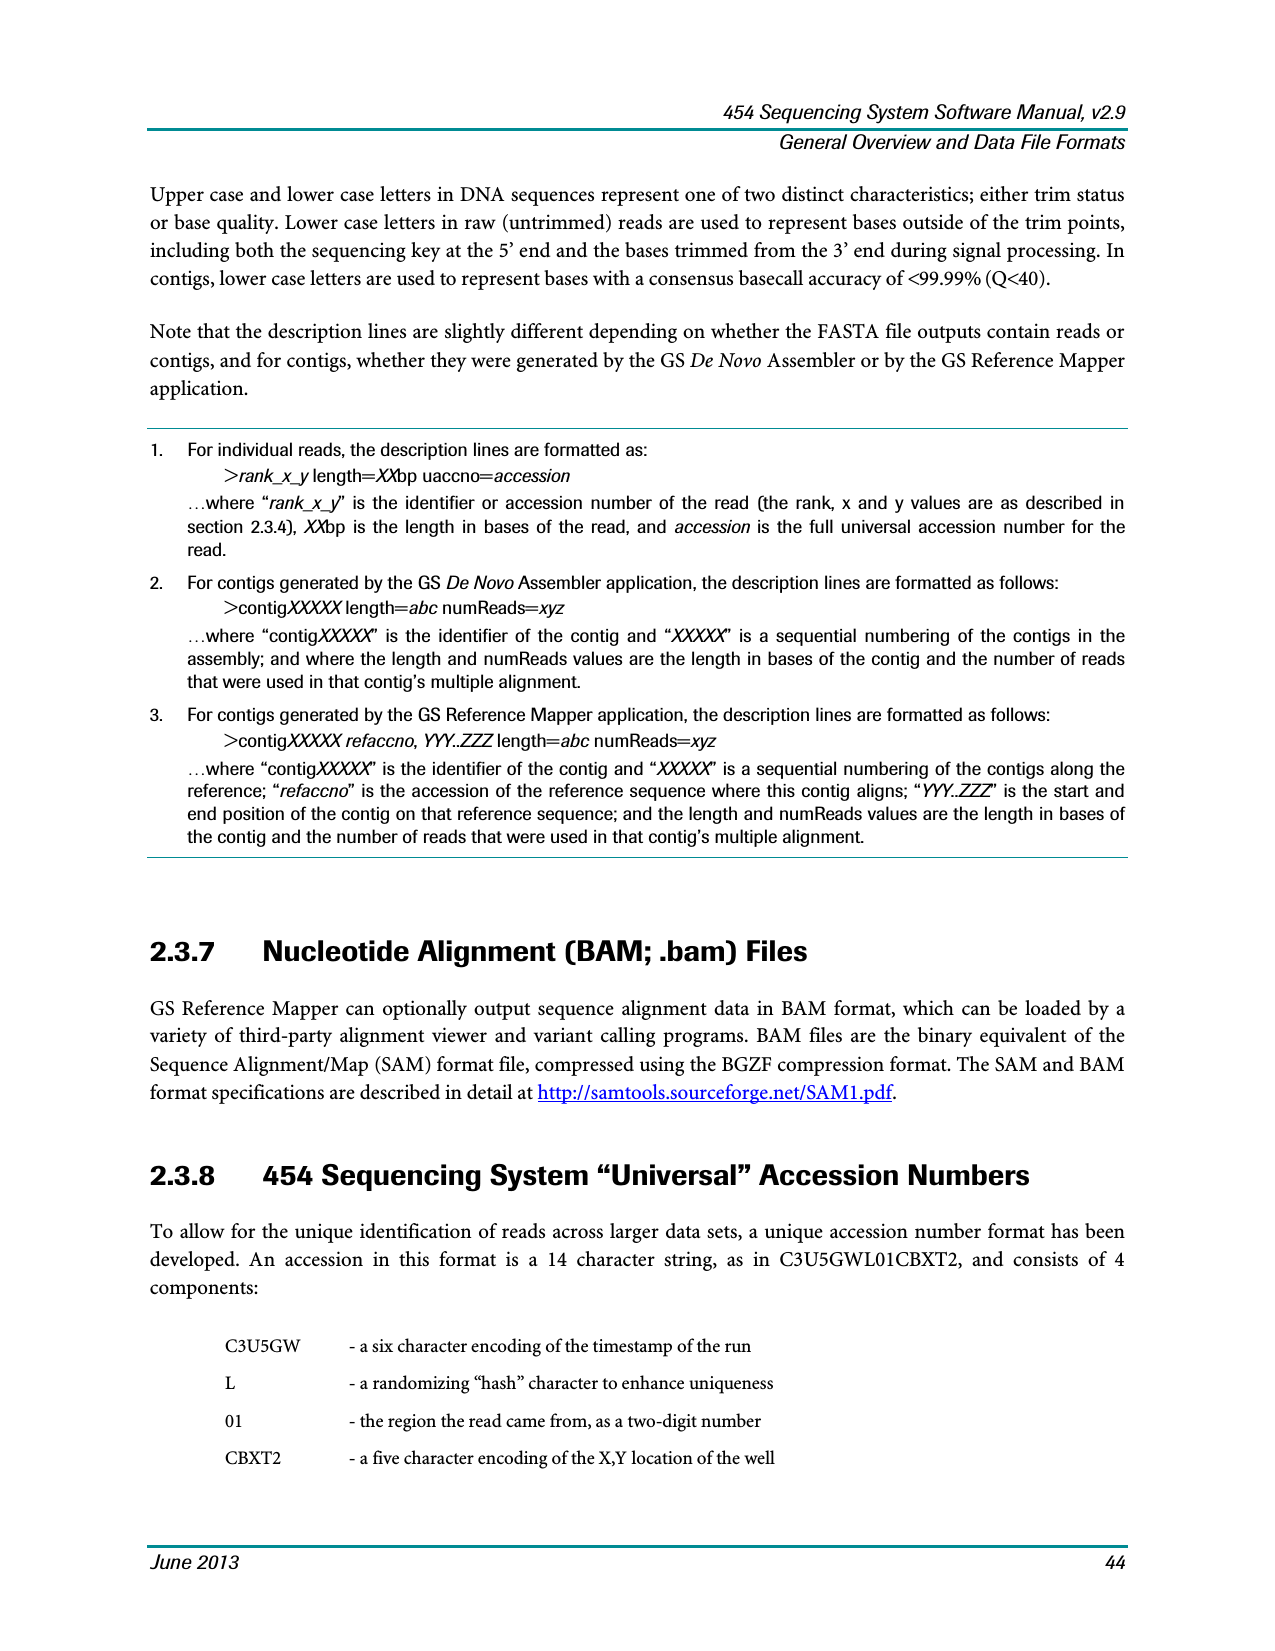 USM-00058.09_454SeqSys_SWManual-v2.9_Overview-44.png